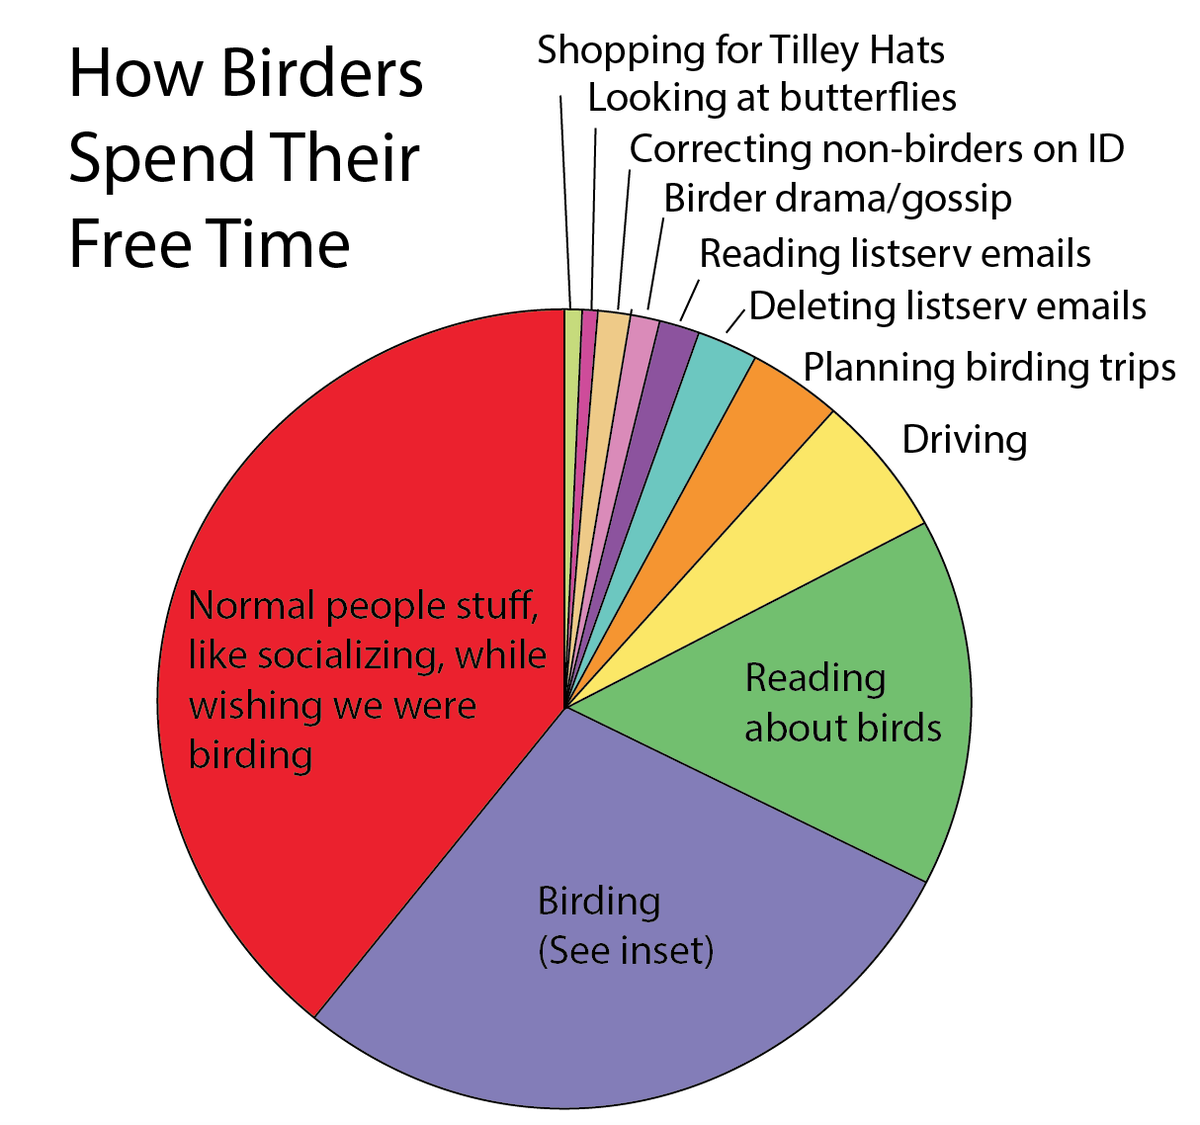 I love this so much. How birders spend their time: -http://t.co/EUa17mJpQj http://t.co/JU3lavCBiL